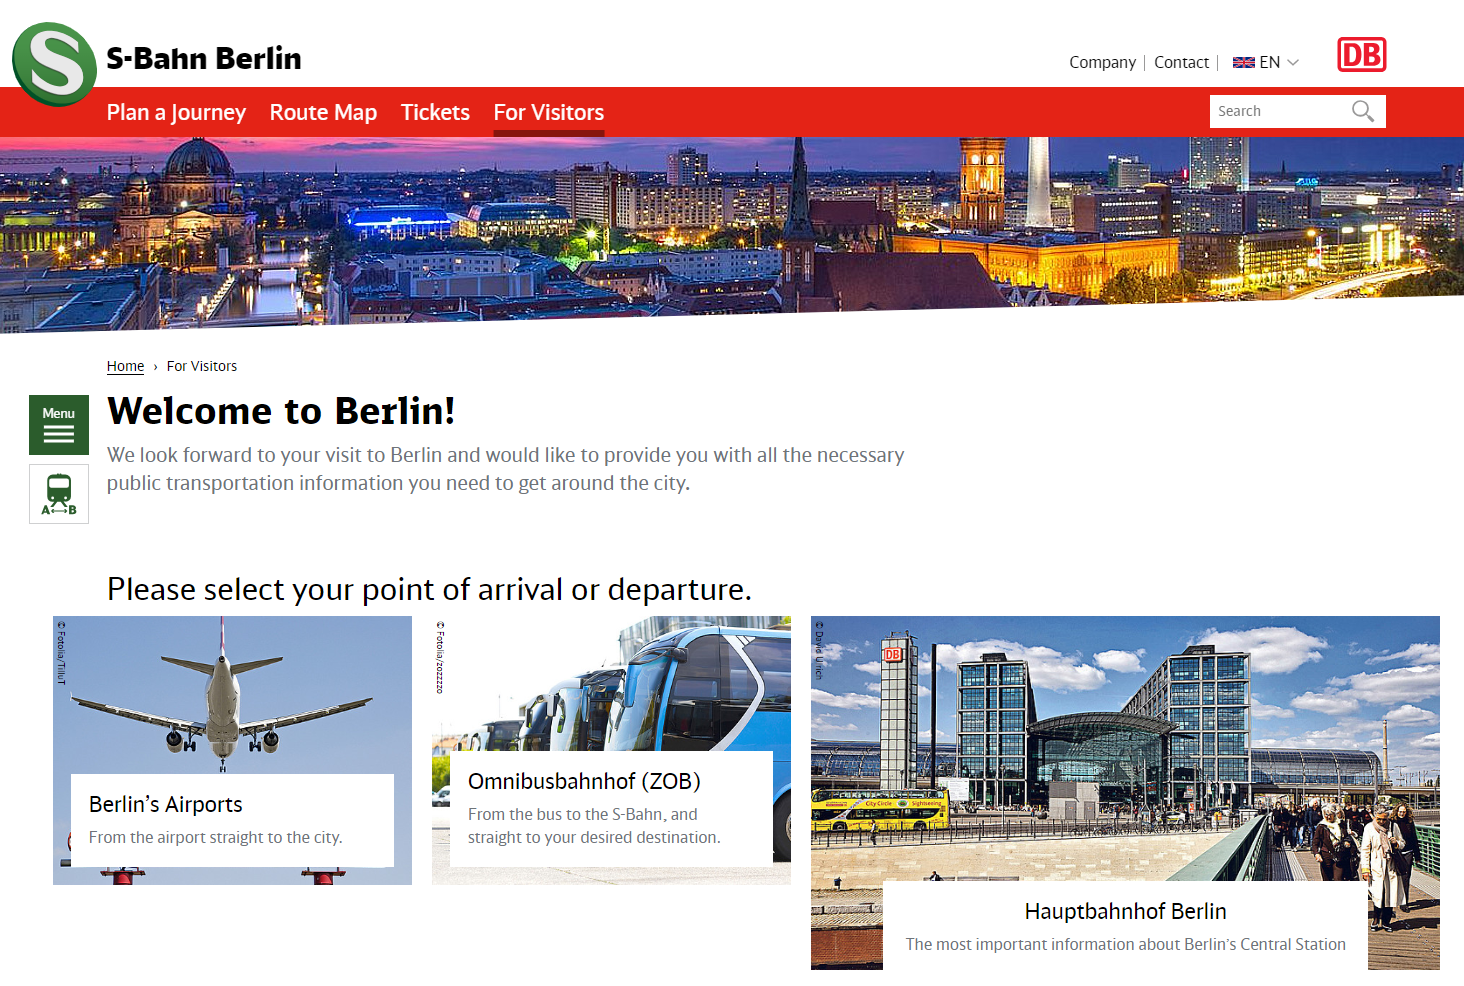 Section For Tourists And Berlin Visitors With Information About Route Planning And Ticket Purchase